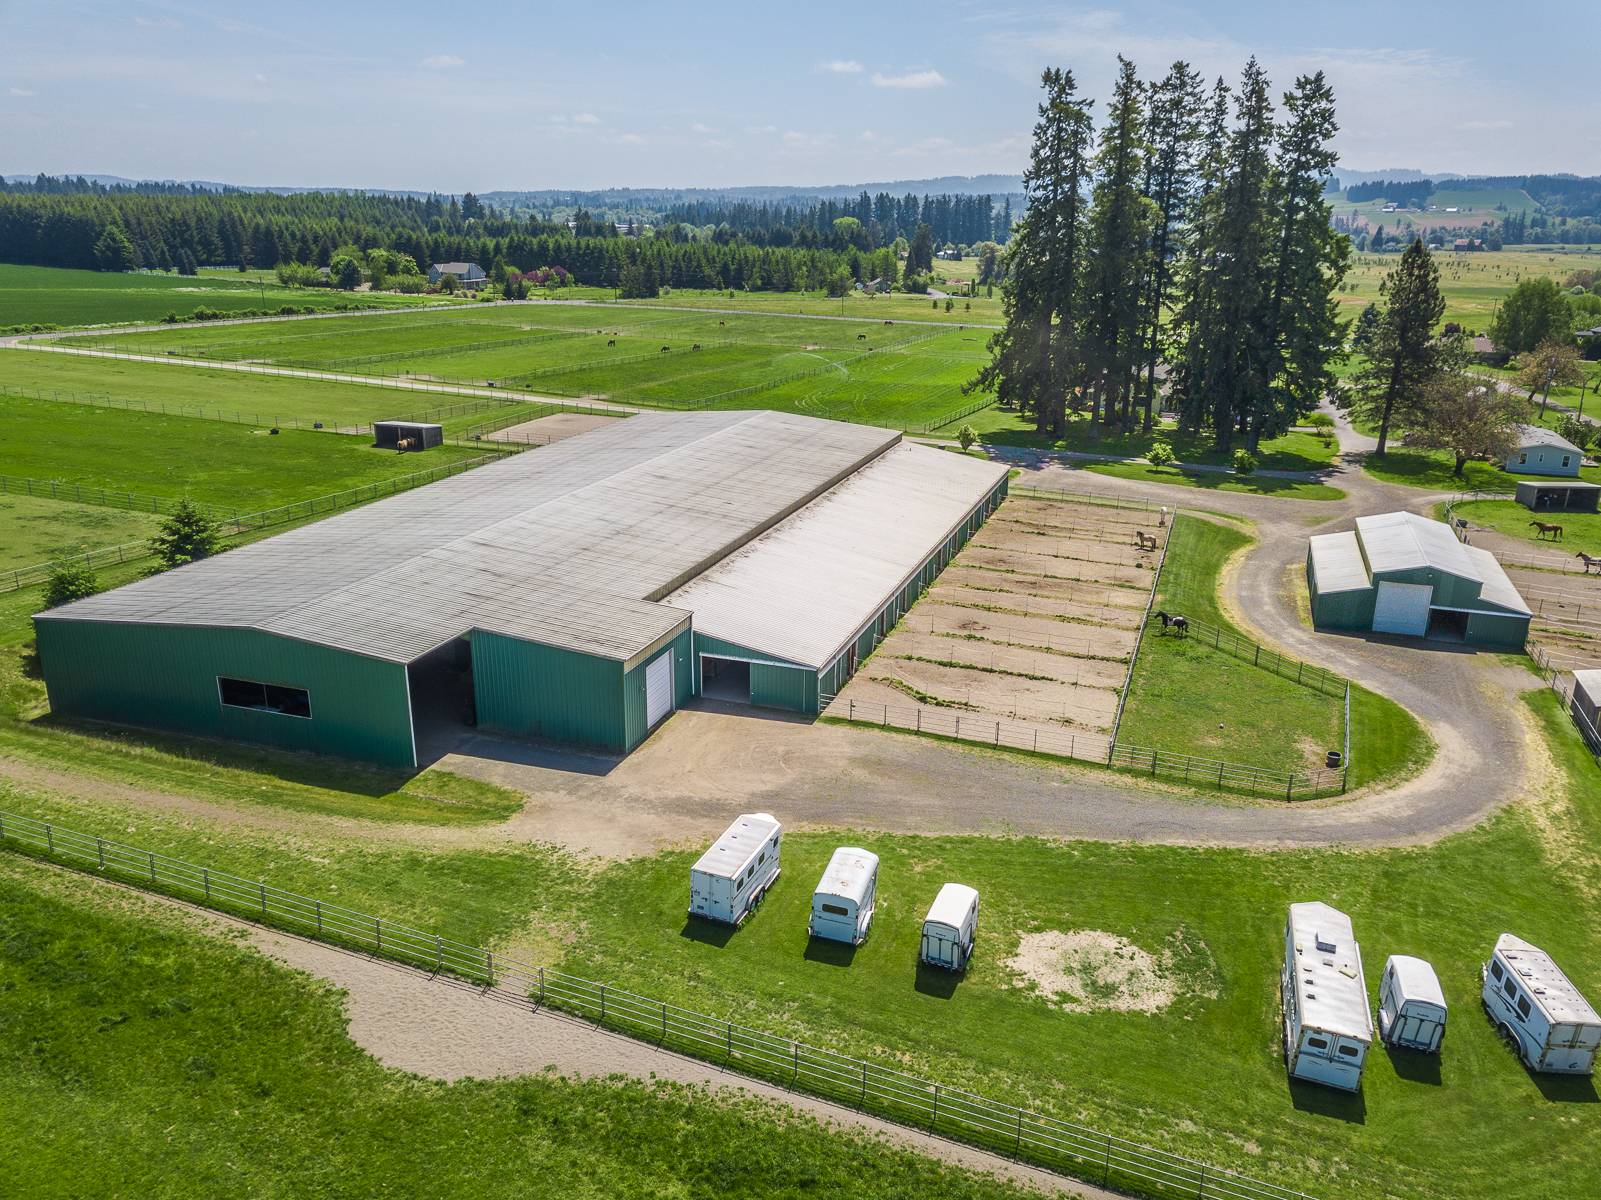 Aerial Arena barn, little barn, trailer parking, runs pastures